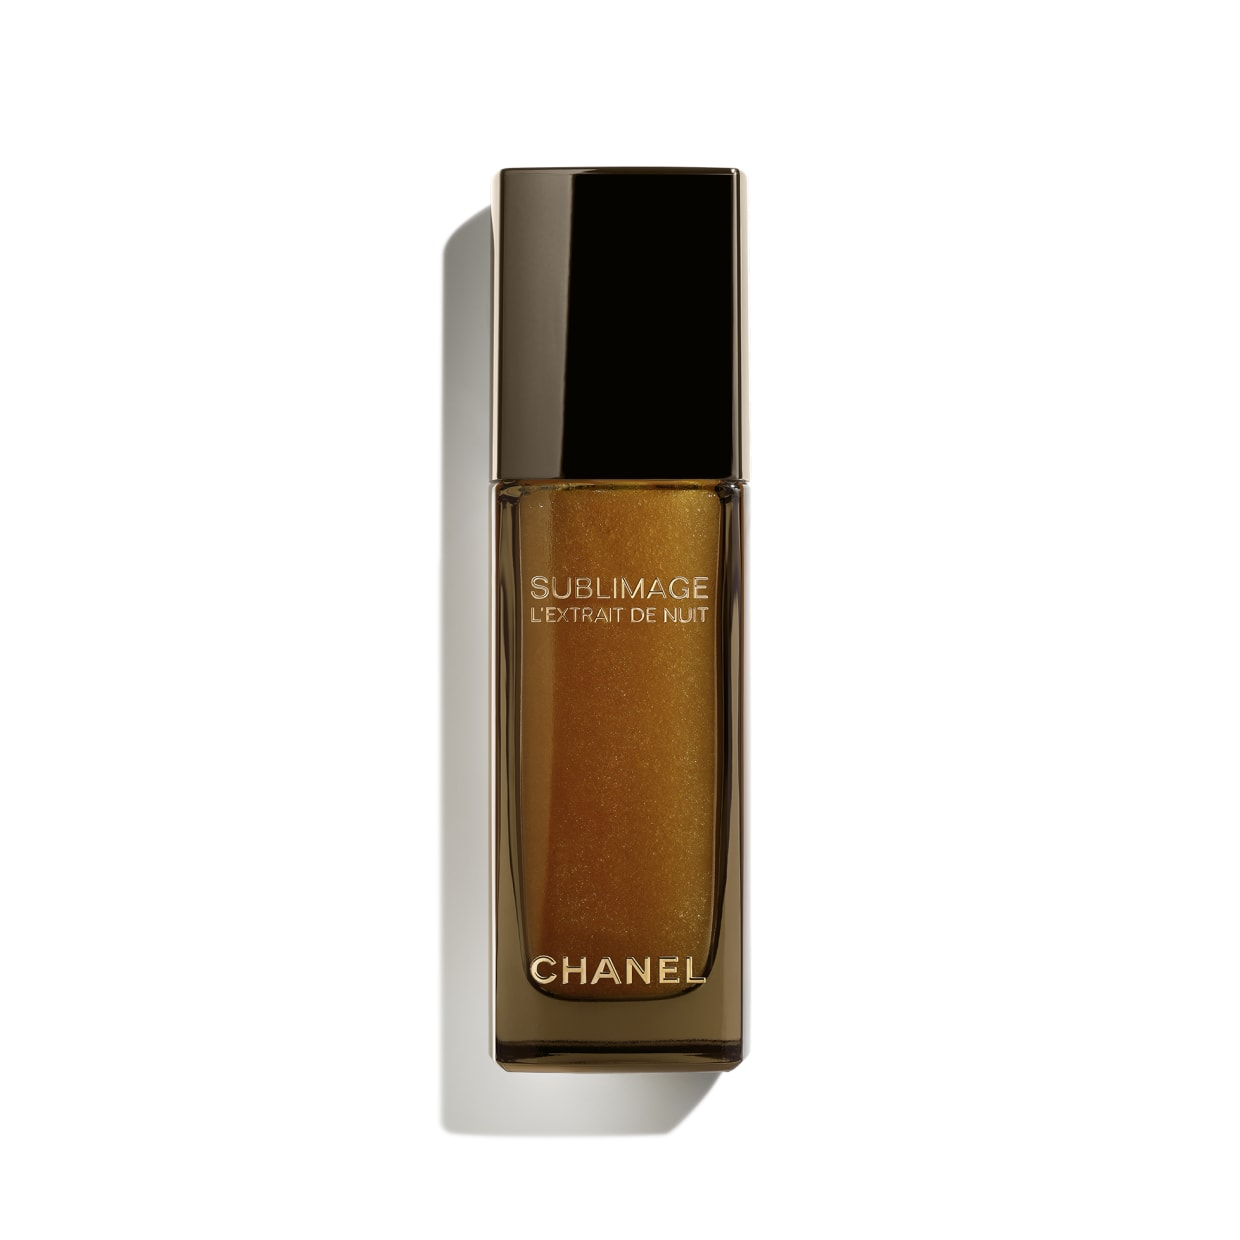 novità Chanel SUBLIMAGE L'Extrait de Nuit